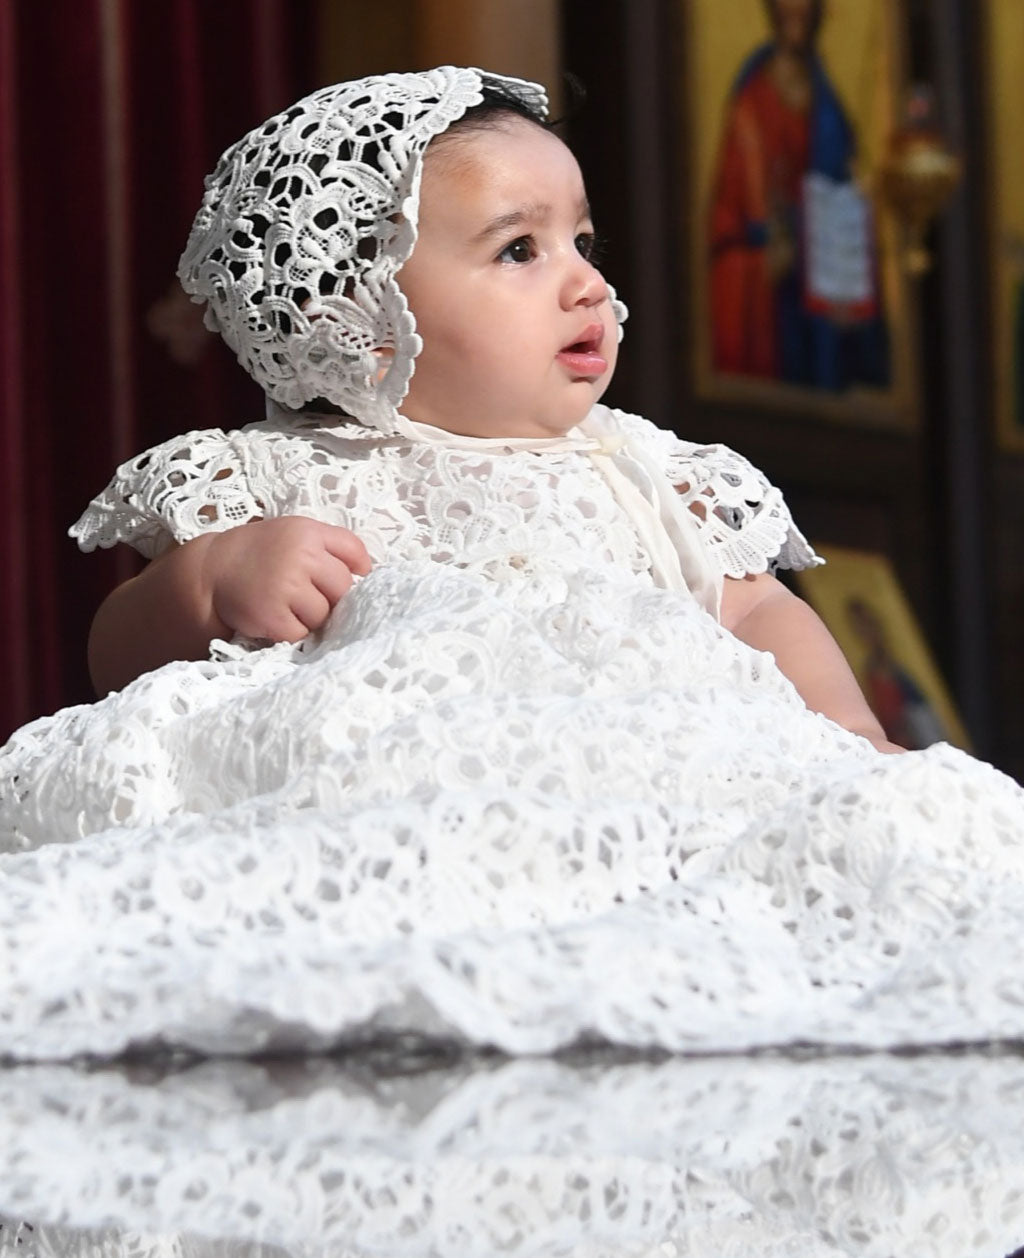 Zoya's Baptism Day | Lola Christening Gown & Bonnet Set by Baby Beau & Belle